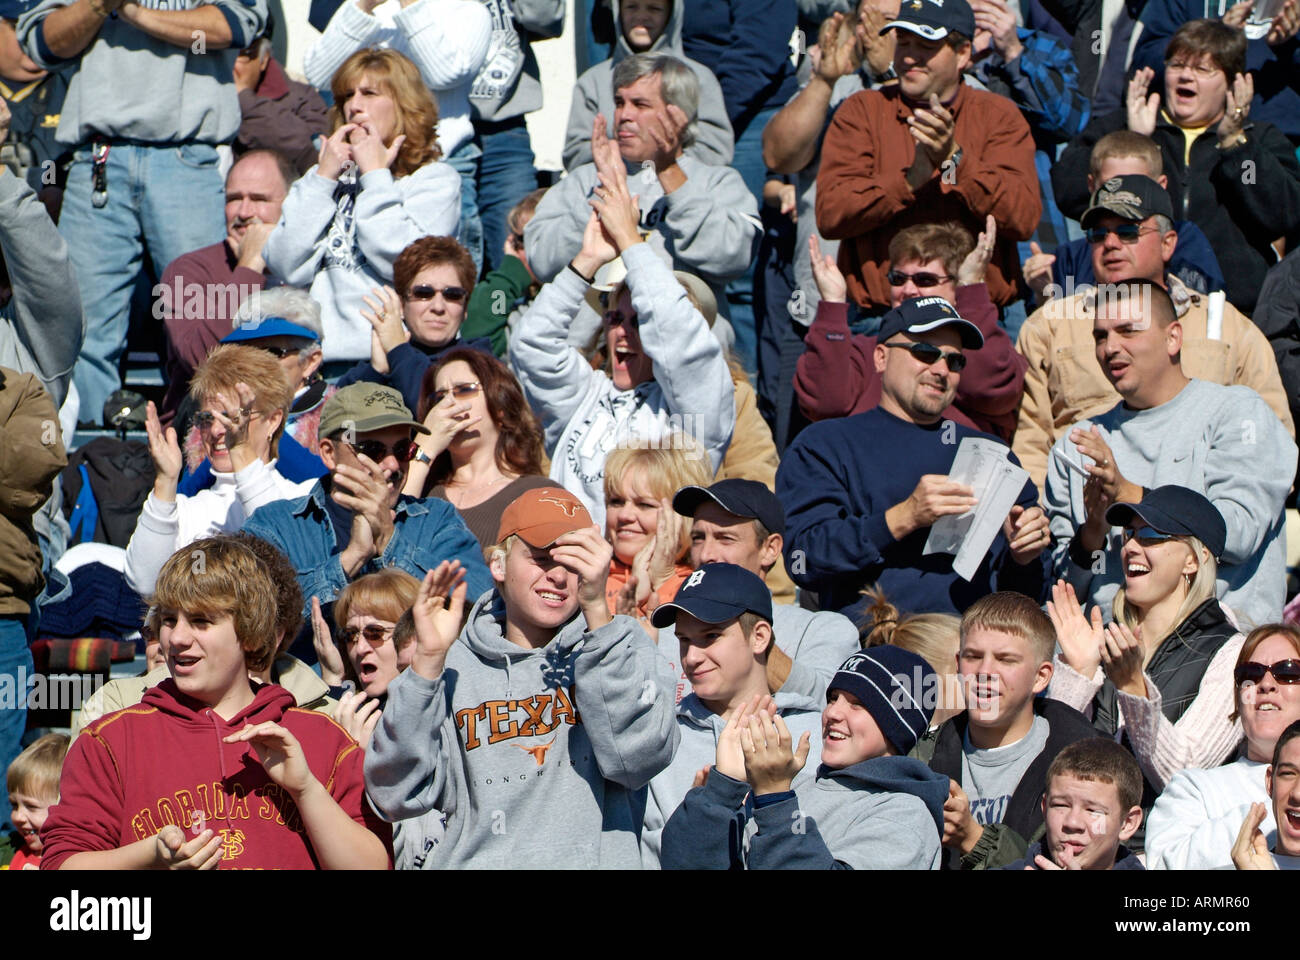 Crowd of people friends and family cheer and support a high school football team - Stock Image